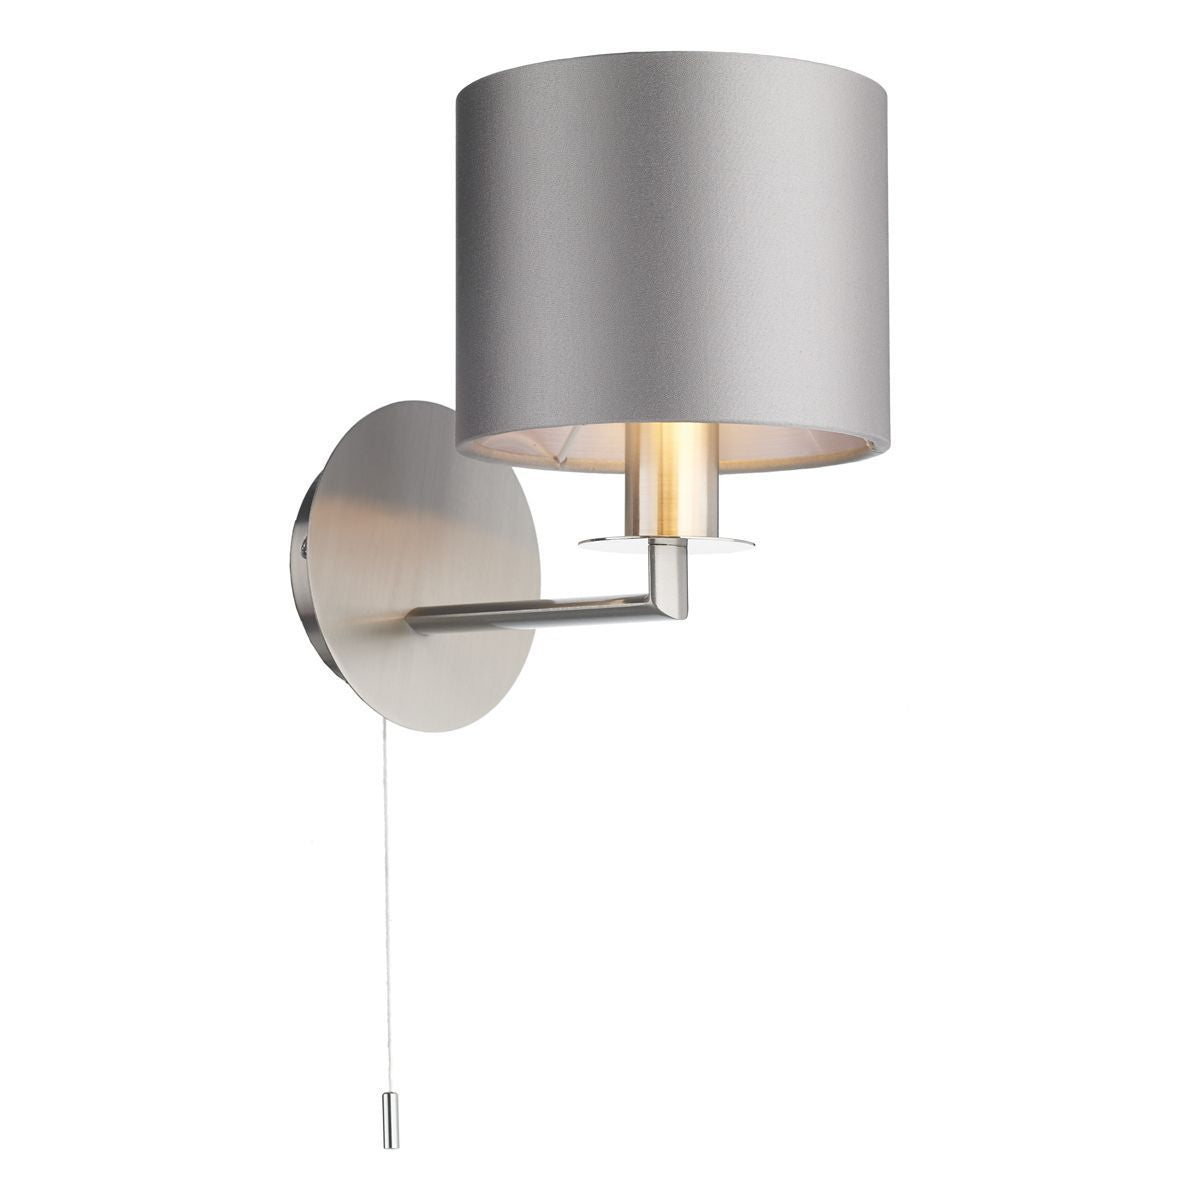 Homerton 1 Light Wall Light In Satin Nickel - ID 8685